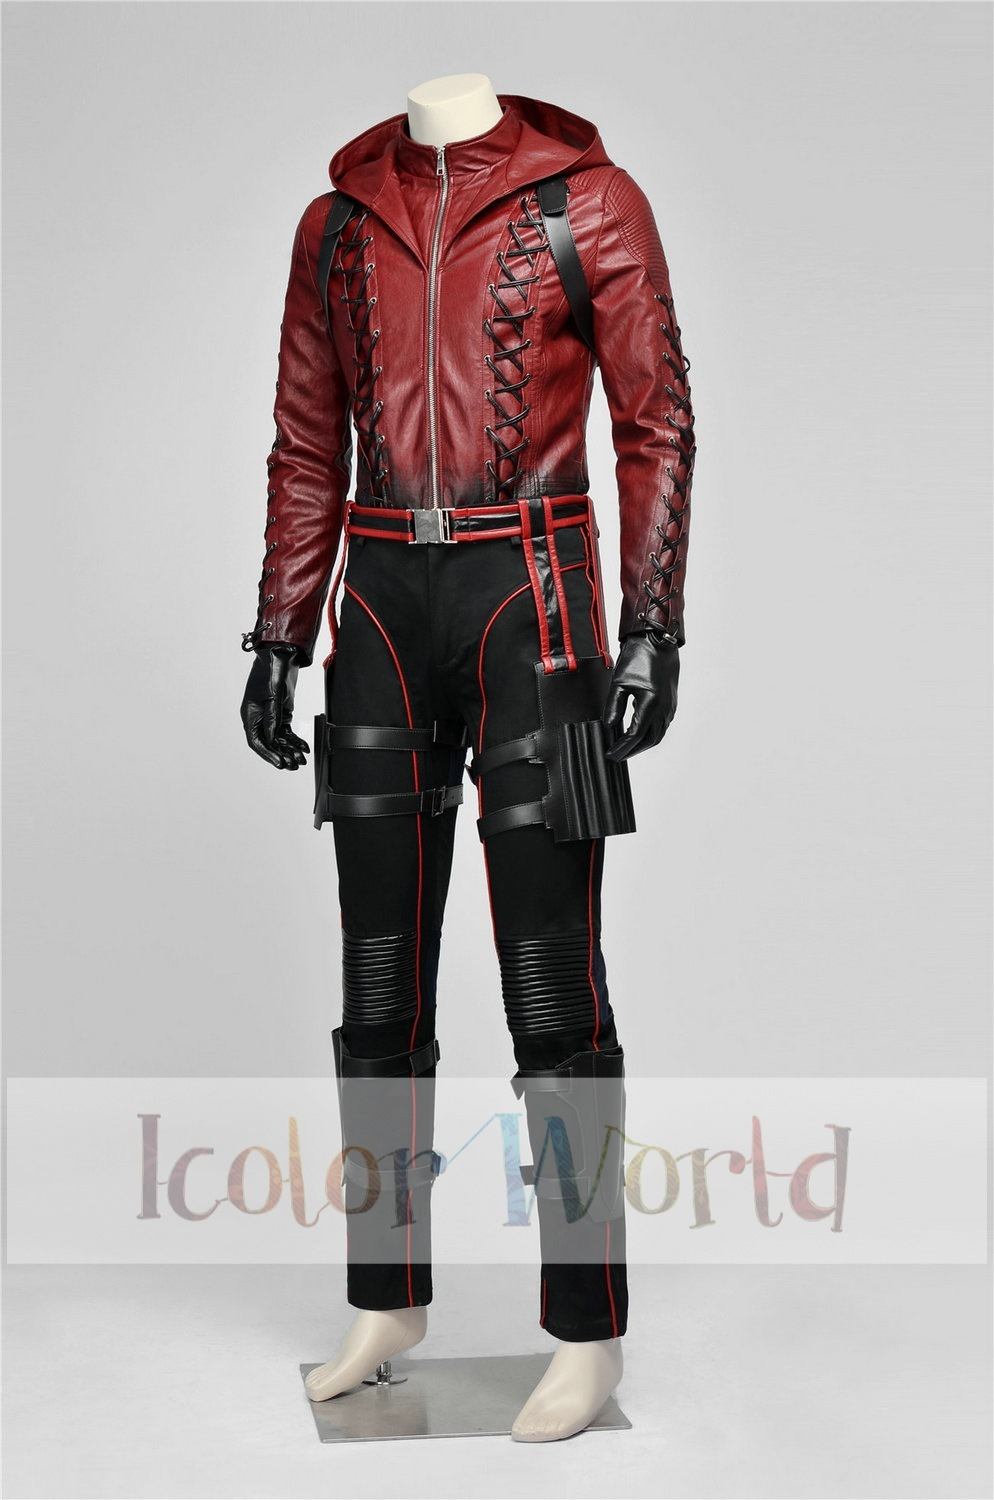 Hot Movie Deluxe Arrow 3 Red Arrow Roy Harper Arsenal Cosplay Costume  Halloween Costume-in Movie & TV costumes from Novelty & Special Use on  Aliexpress.com ...